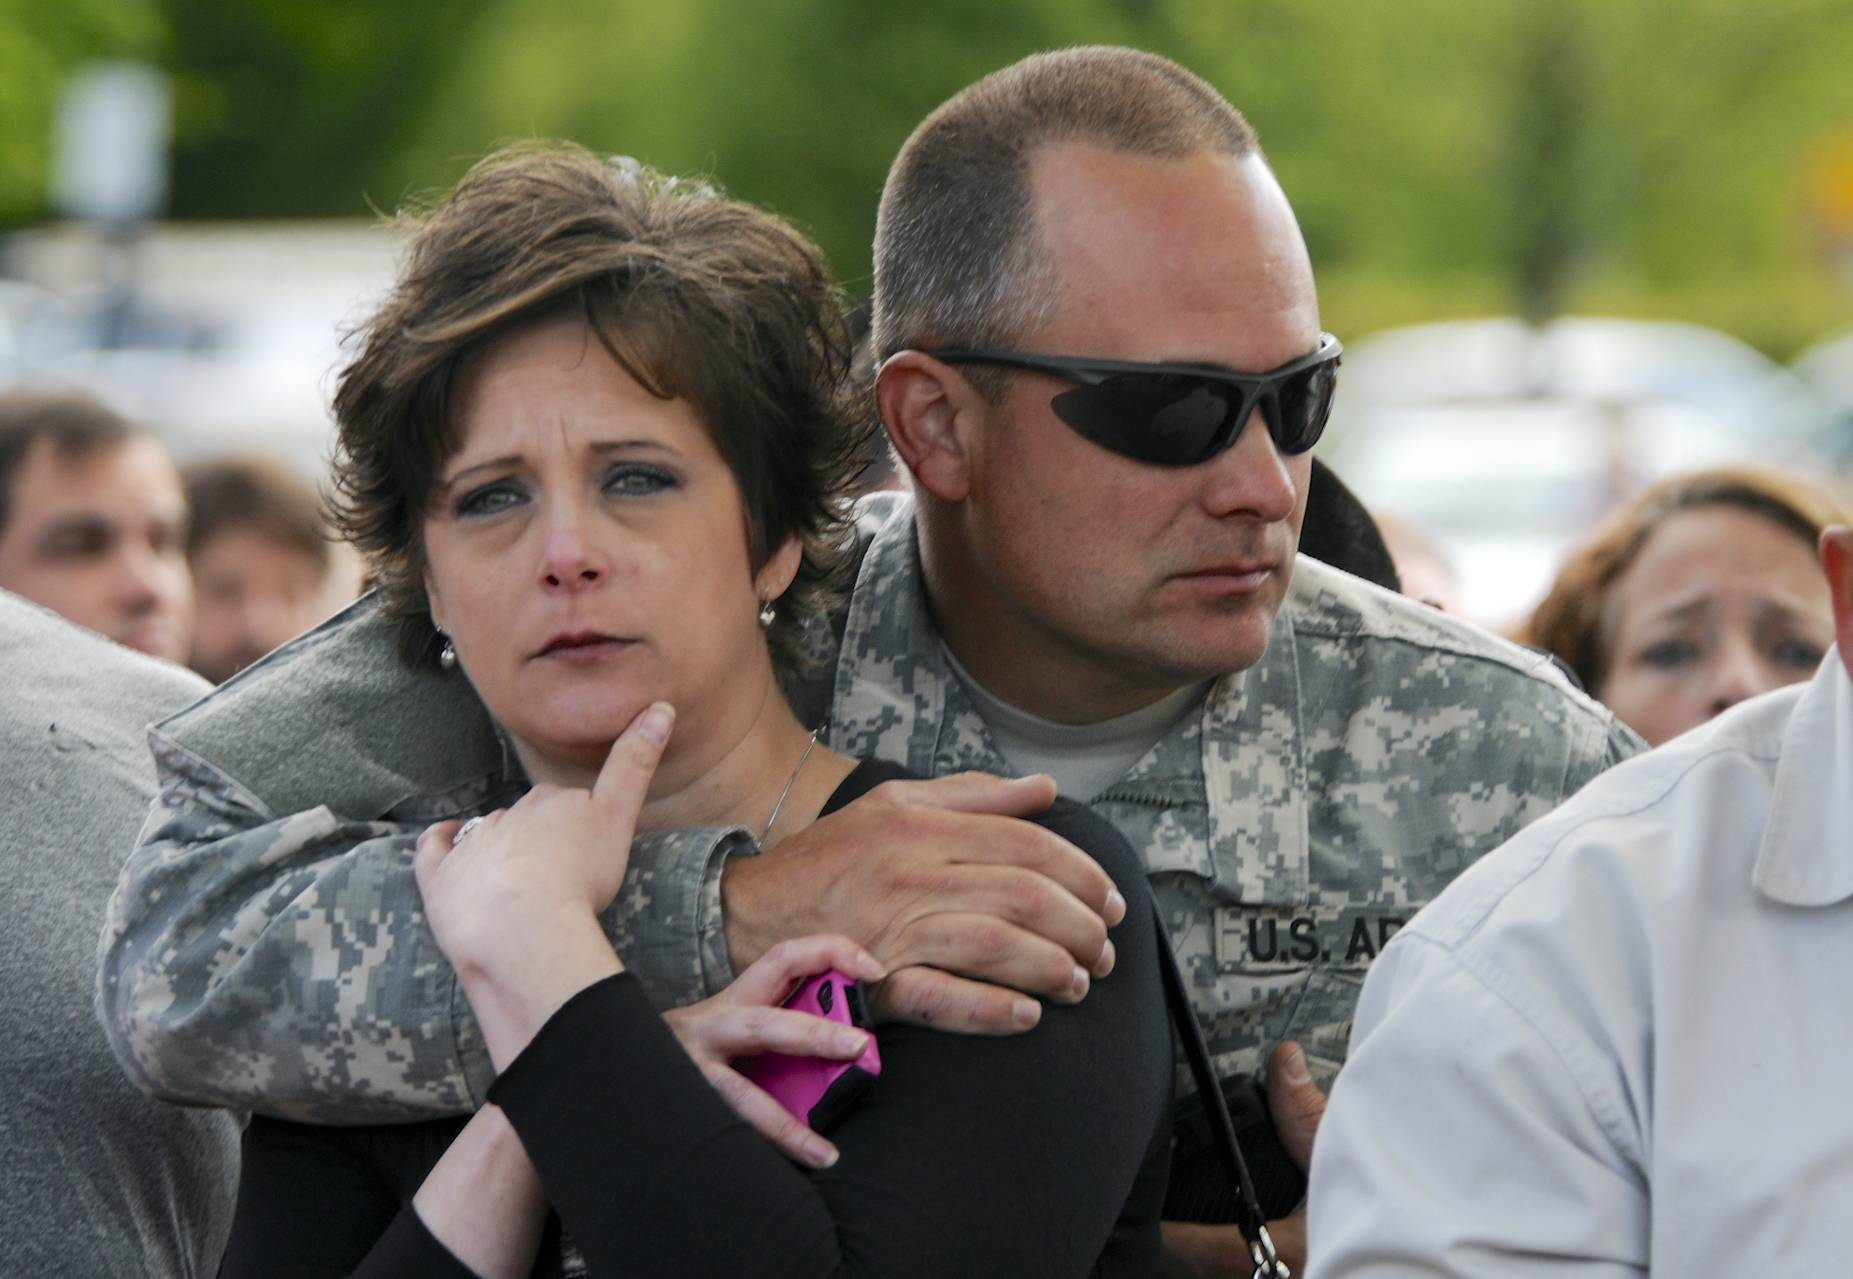 Parents wait at the Fred Meyer grocery store parking lot Tuesday in Wood Village, Ore., to be reunited with students after a shooting at Reynolds High School.